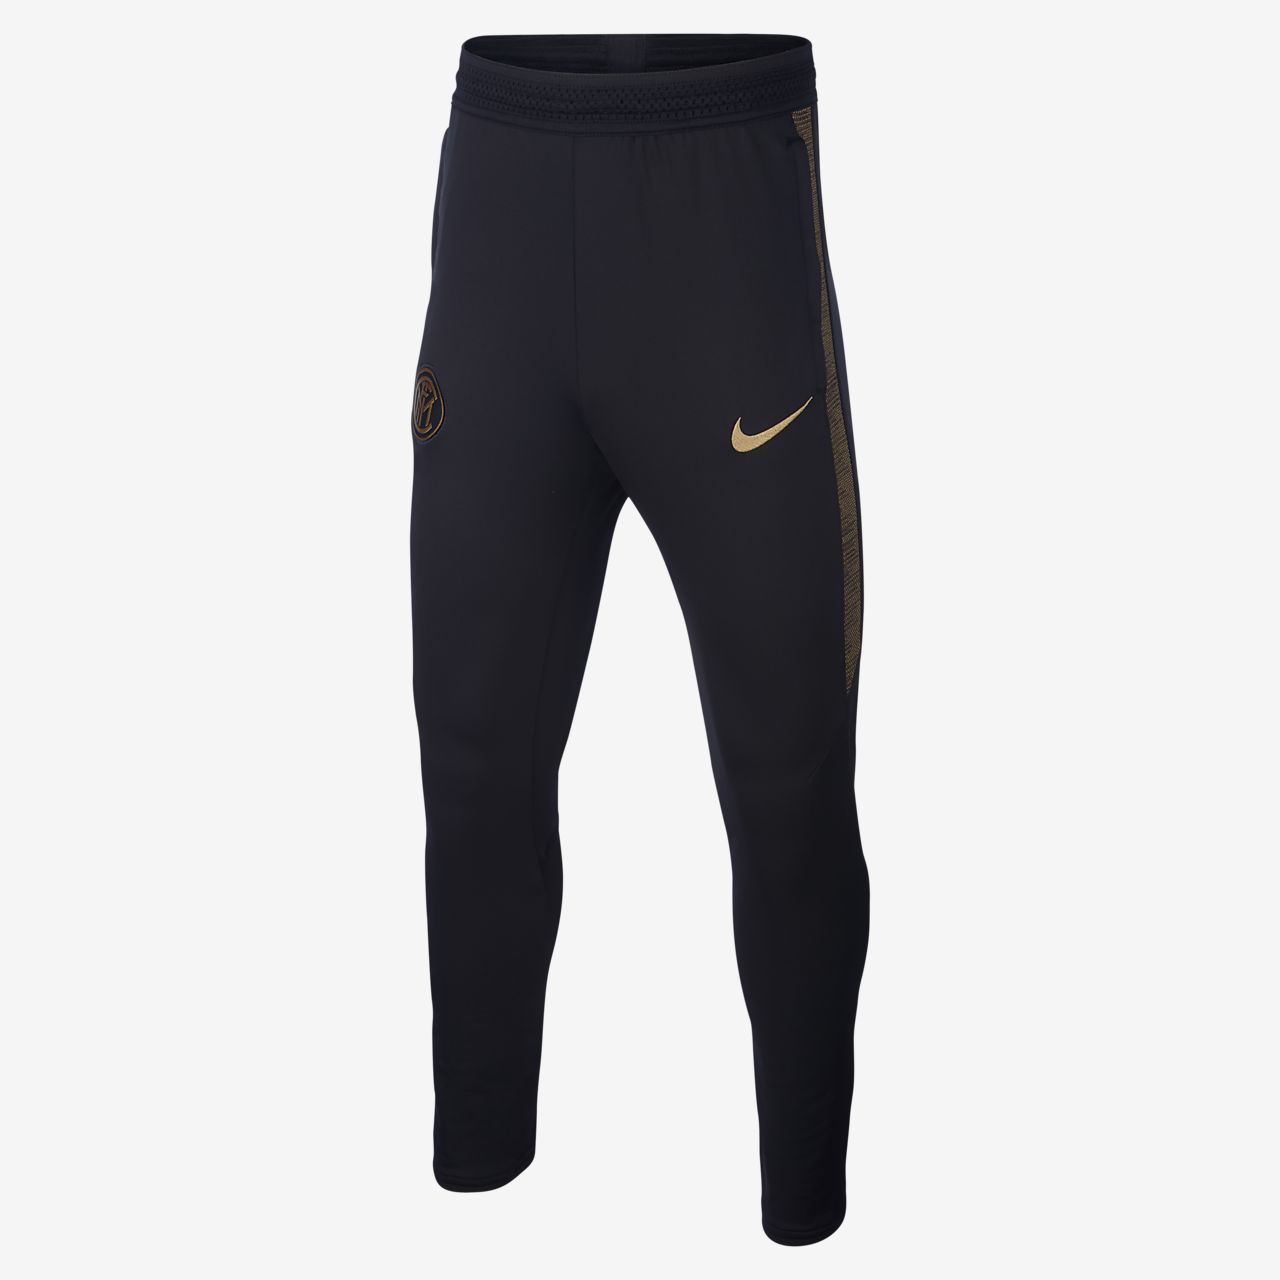 Nike Dri-FIT Inter Milan Strike Older Kids' Football Pants